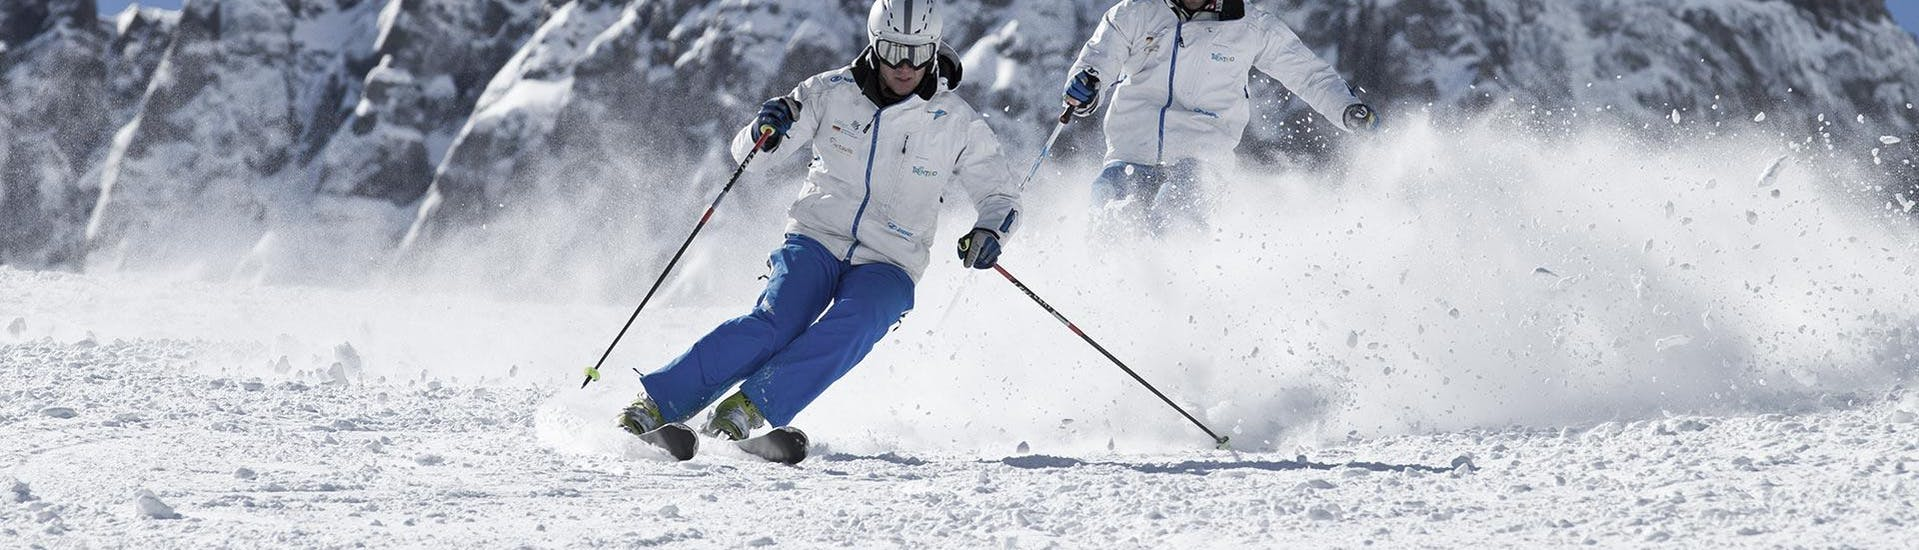 Skiing Lessons for Adults - Weekend with Skischule Egon Hirt - Hero image